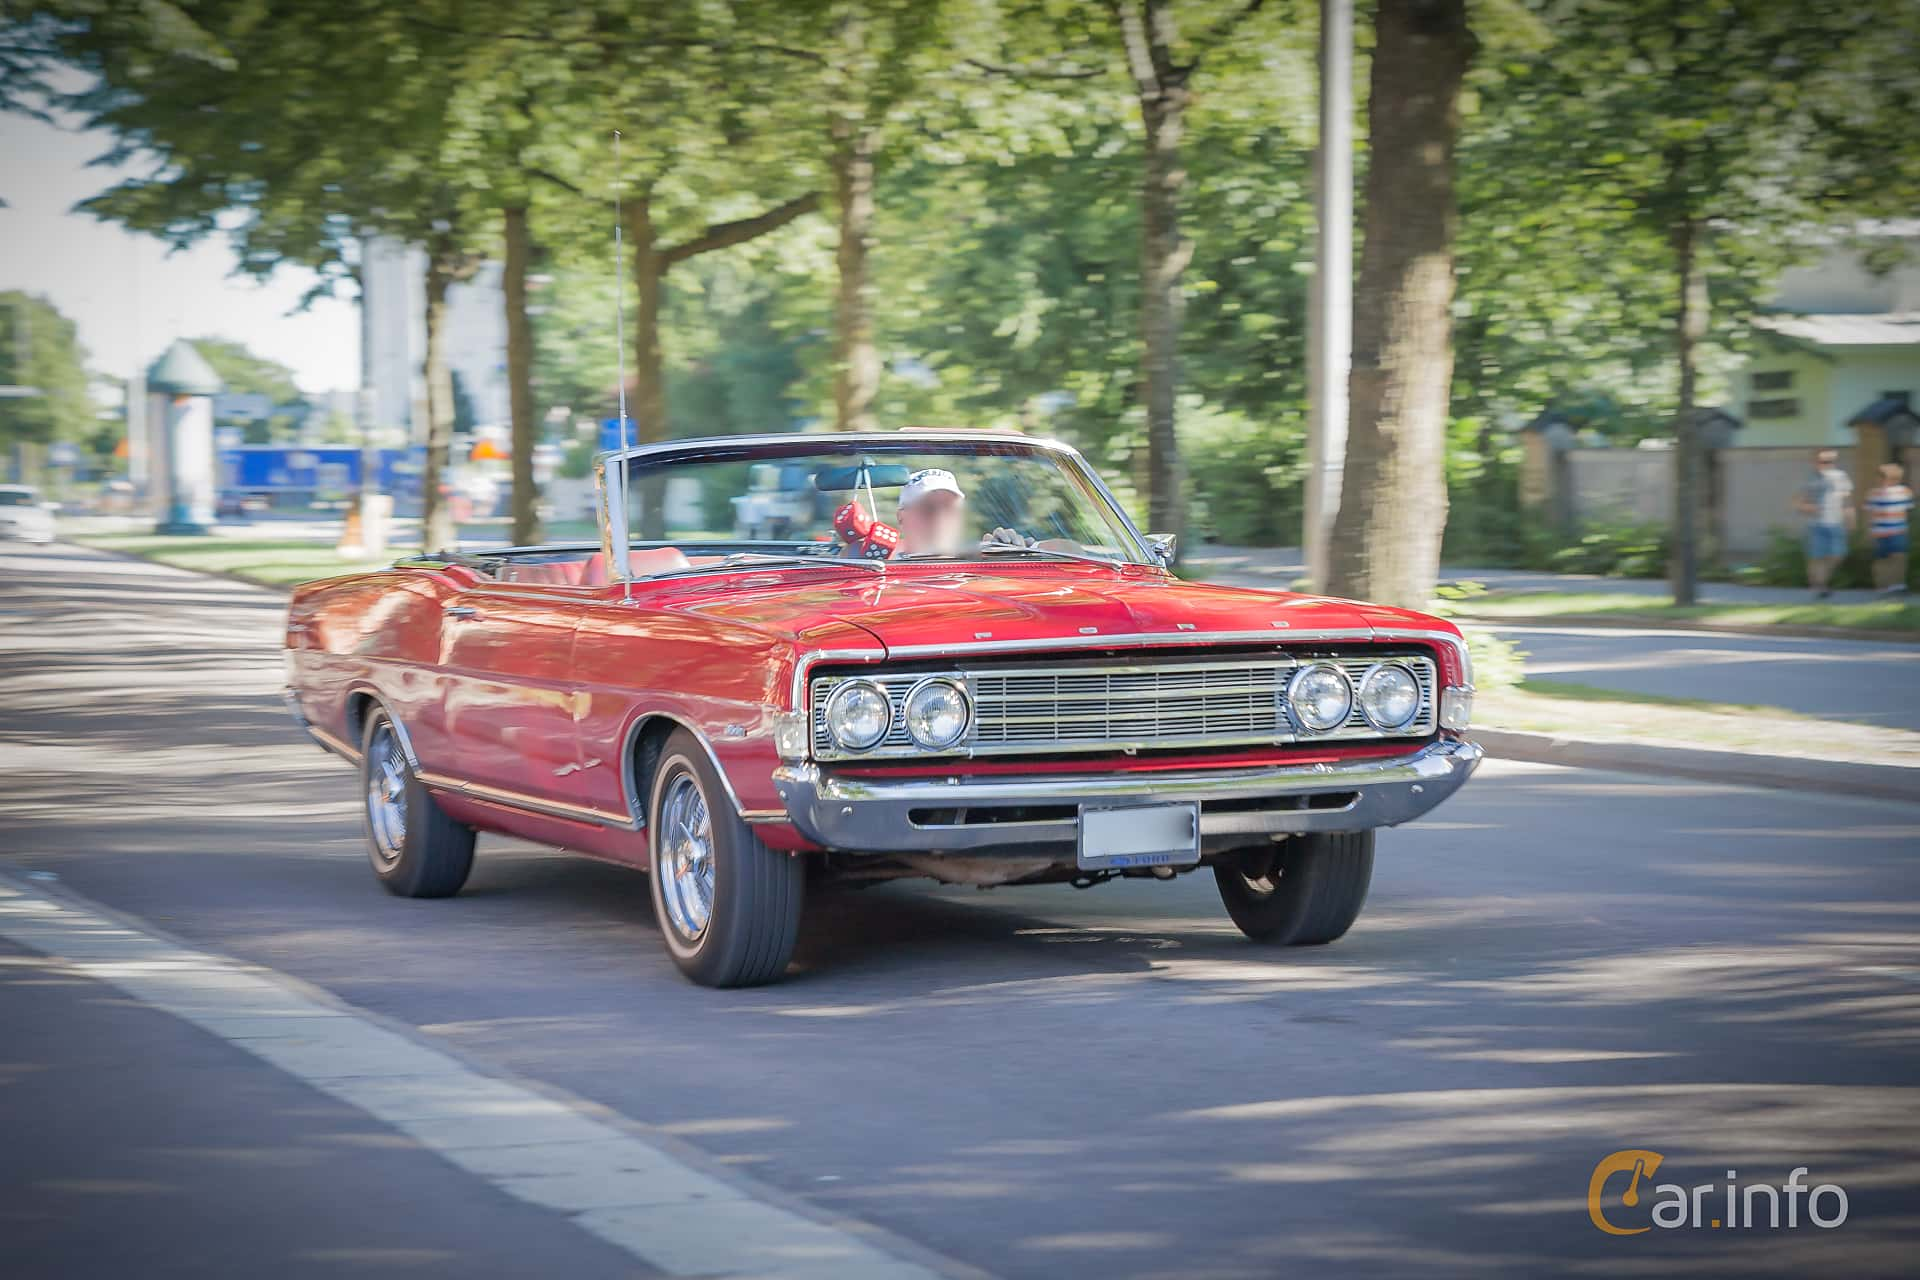 1 Images Of Ford Fairlane Convertible 49 V8 Automatic 223hp 1969 Muscle Cars Front Side 223ps At Power